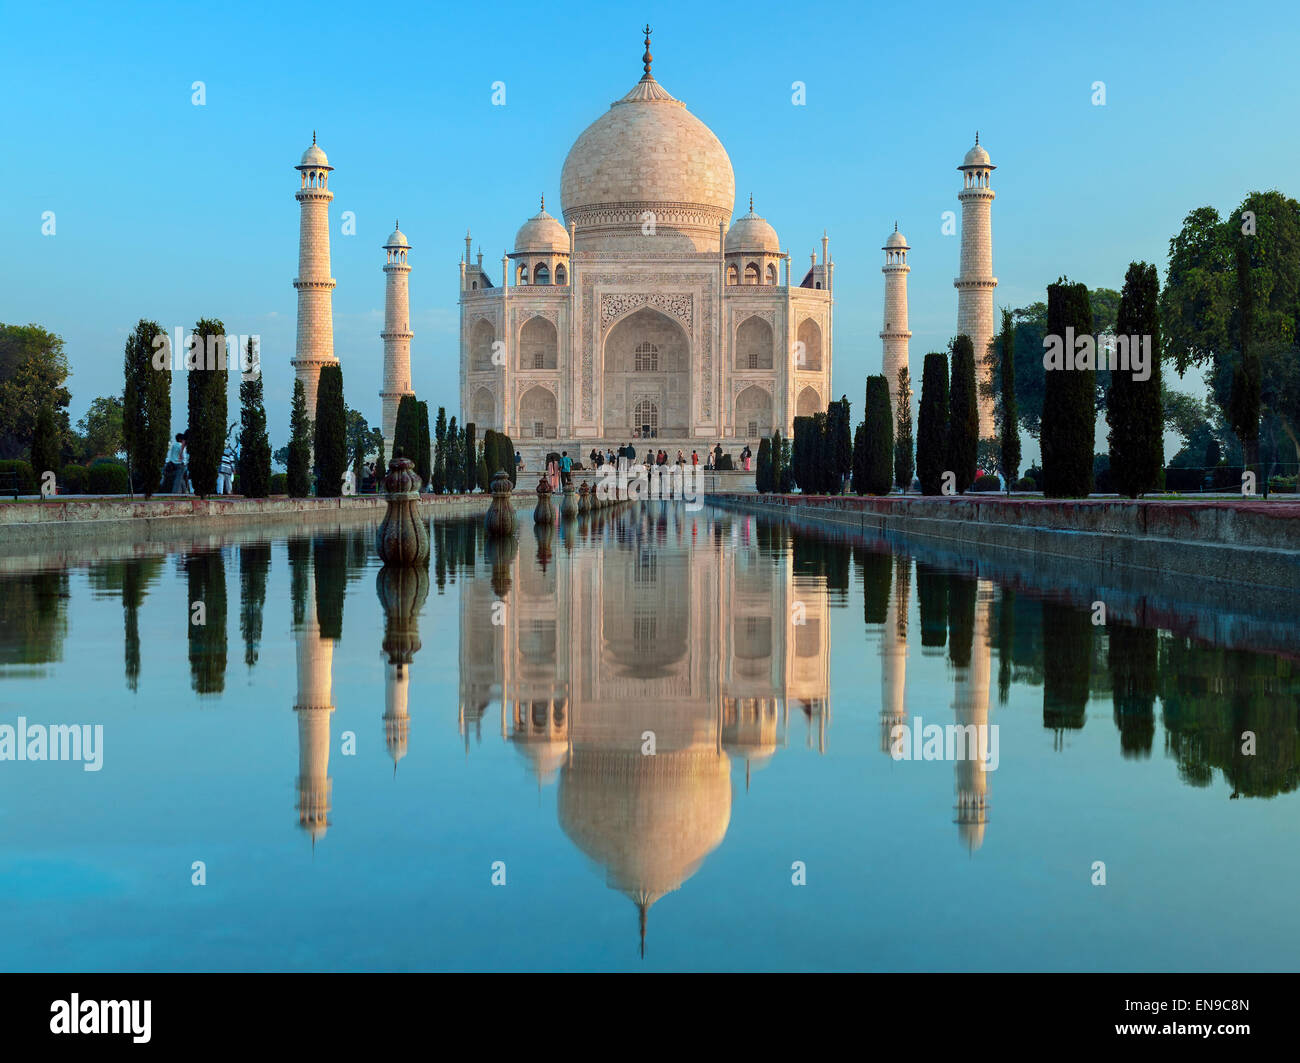 The Taj Mahal at dawn - a mausoleum at Agra in northern India - Stock Image